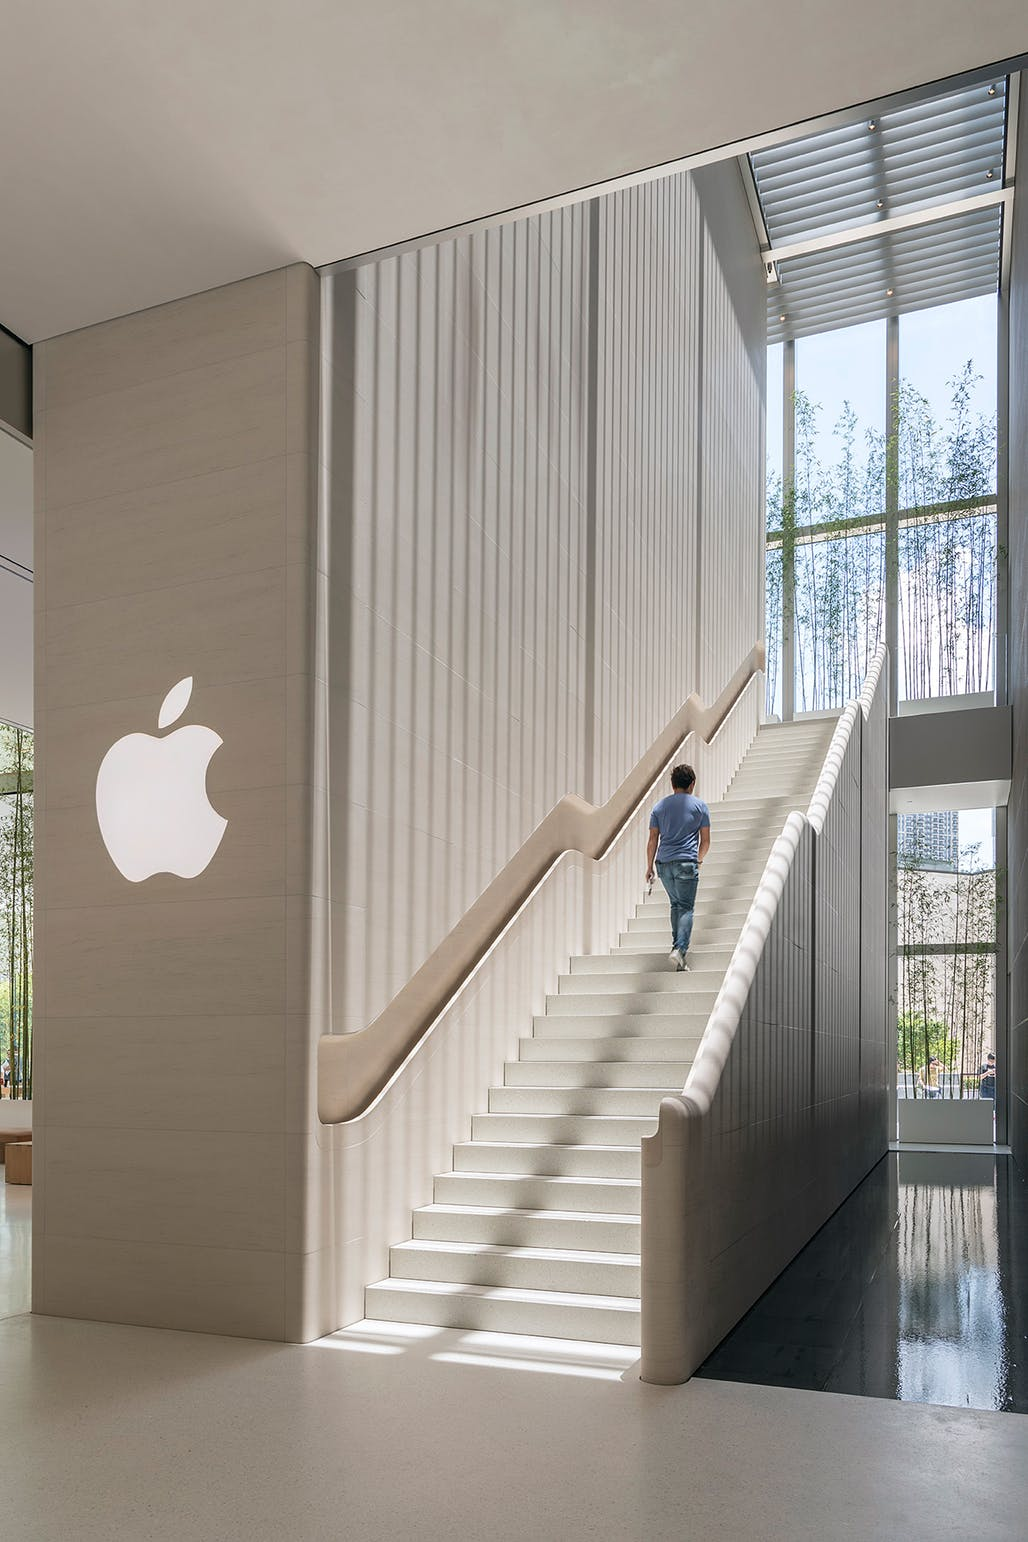 viventium-design-zac-kraemer-apple-macau-retail-experience-design-5.jpg